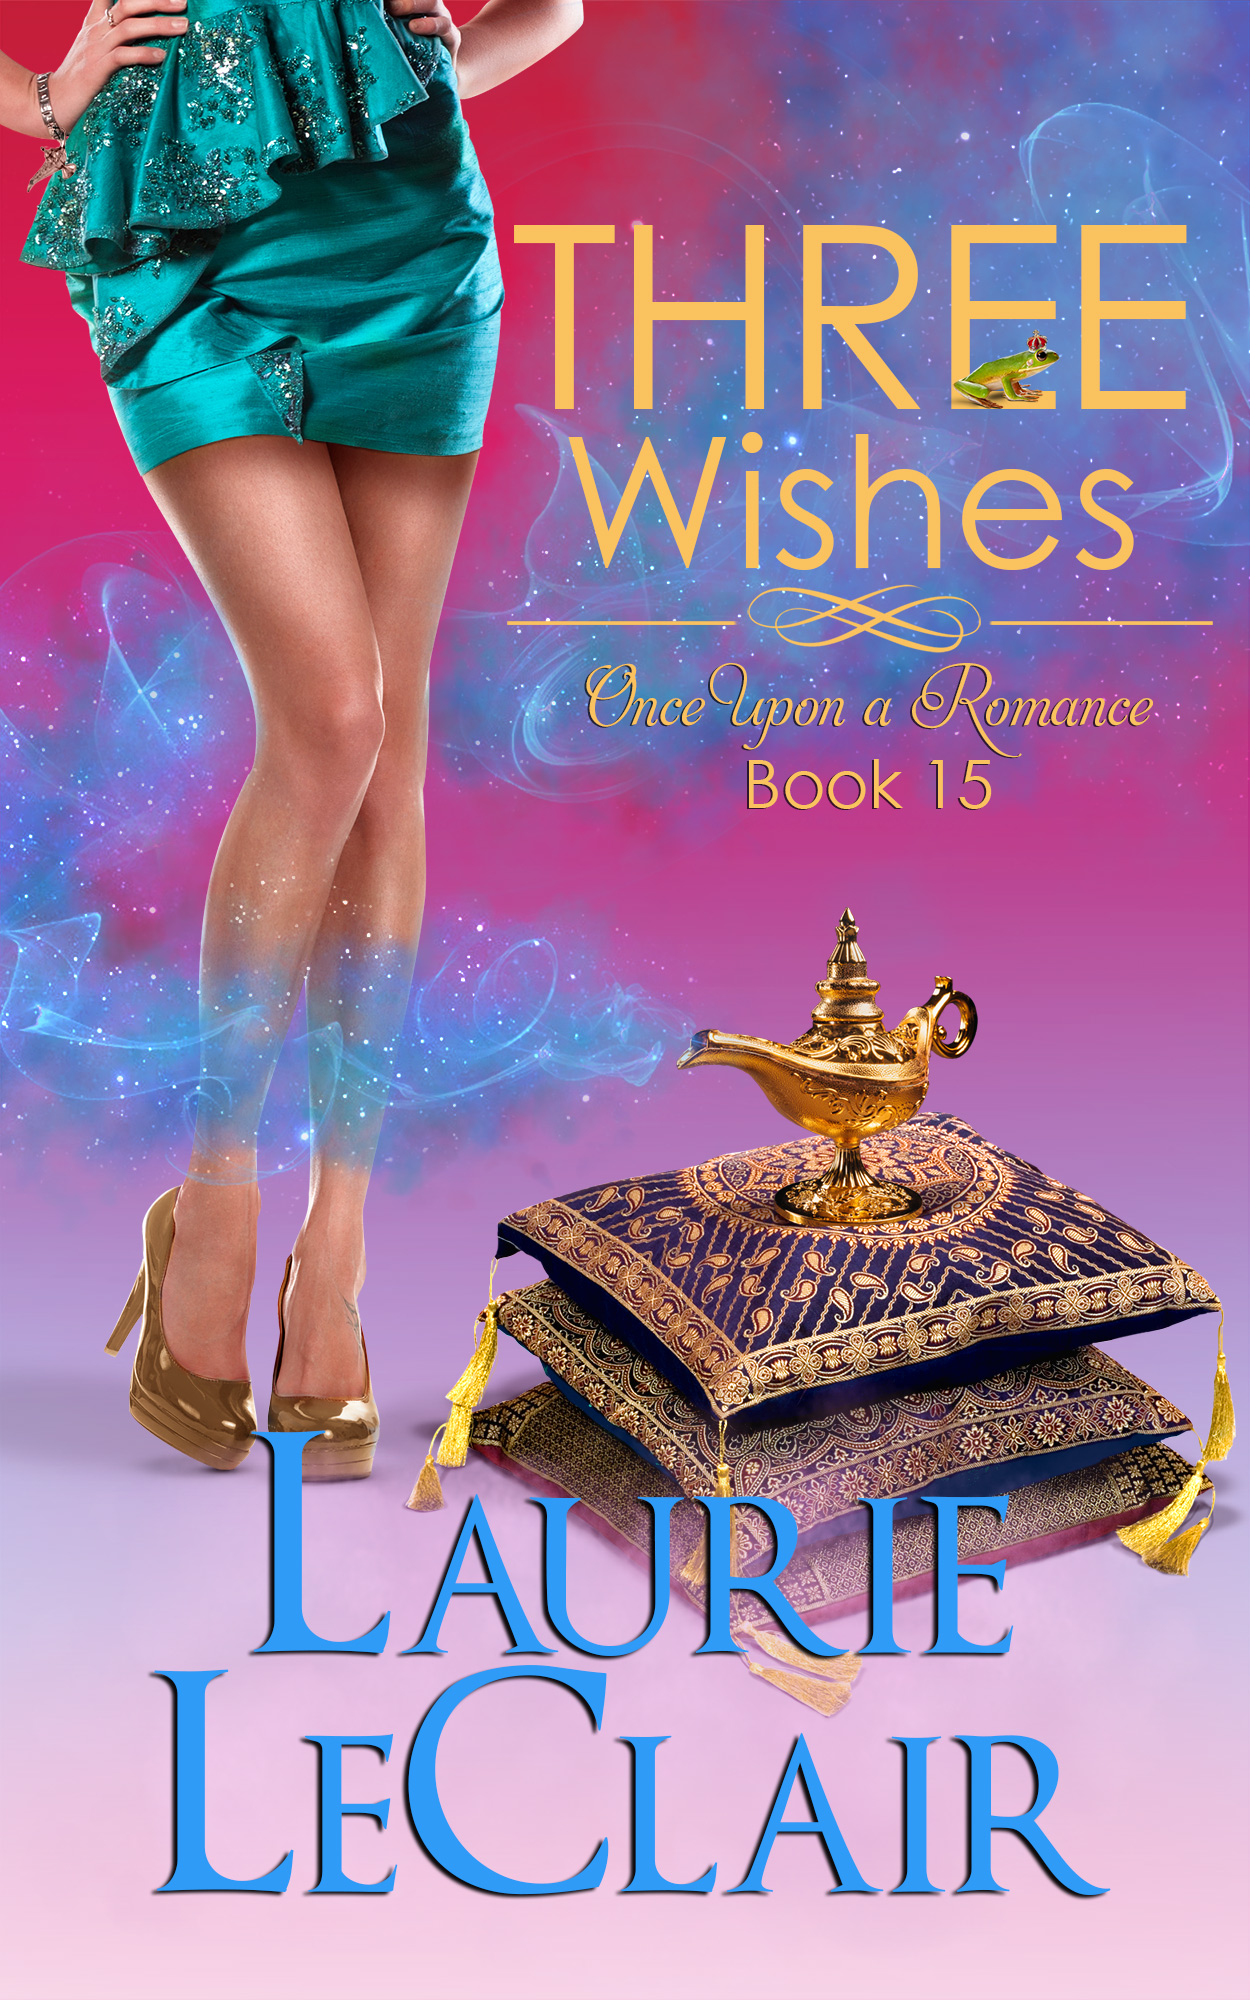 Three-Wishes-final-for-Barnes-and-Noble.